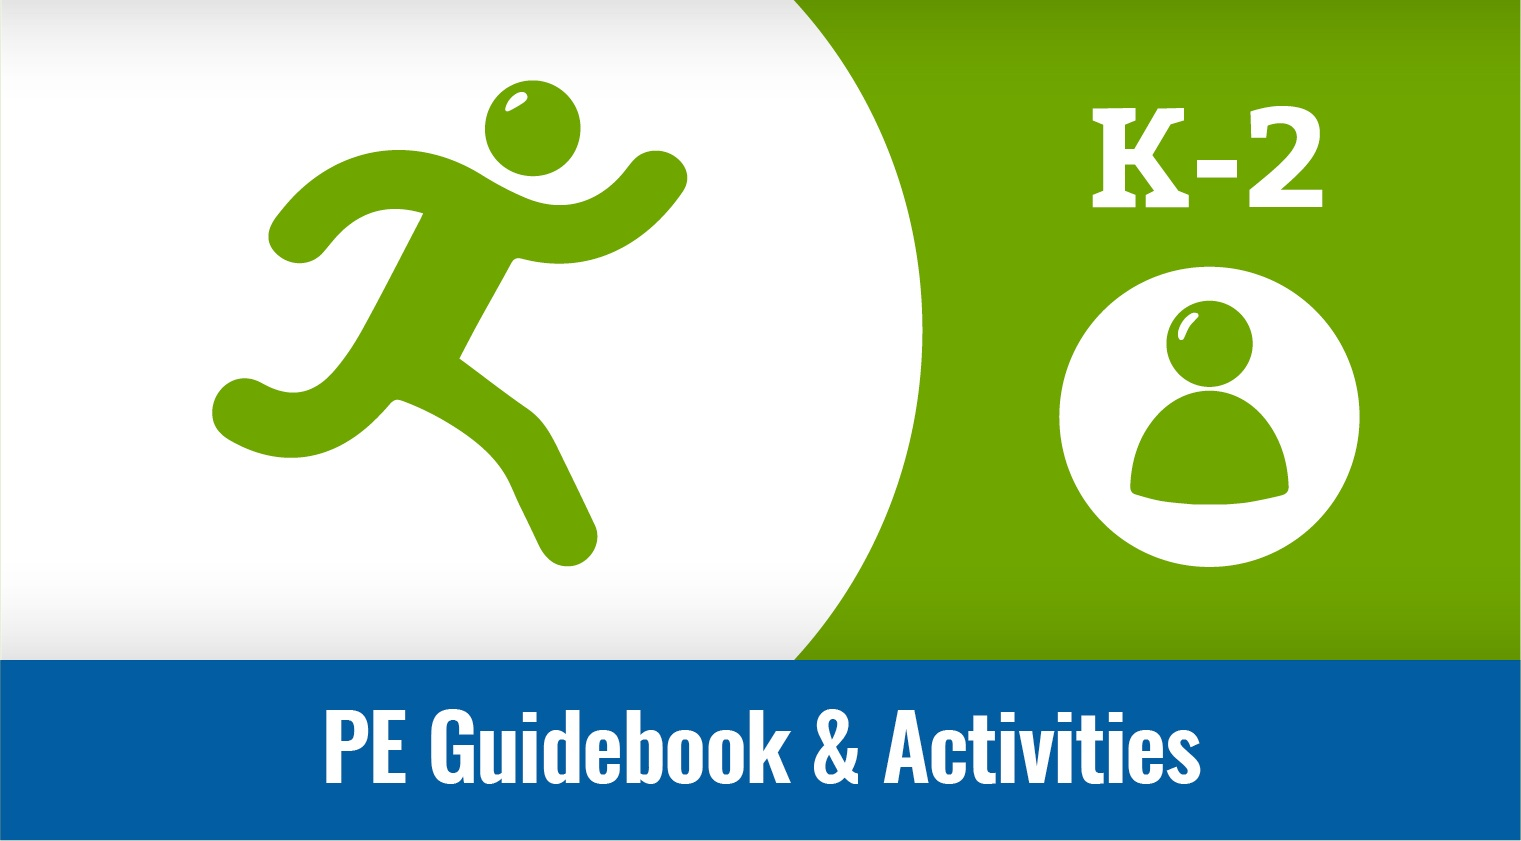 CATCH PE K-2 Activity Cards